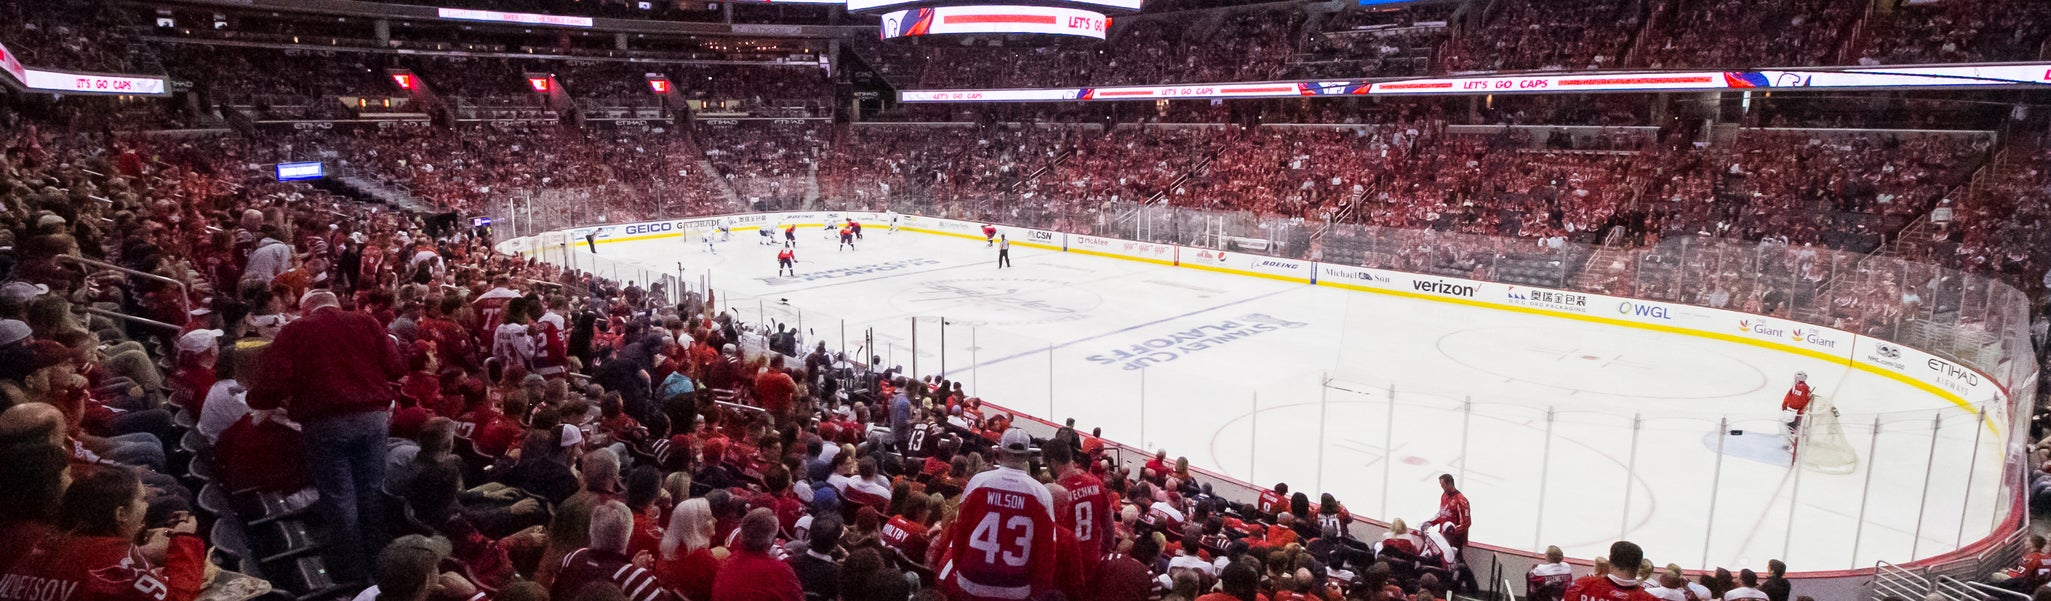 Seat view from LL Center Preferred 102 at Capital One Arena